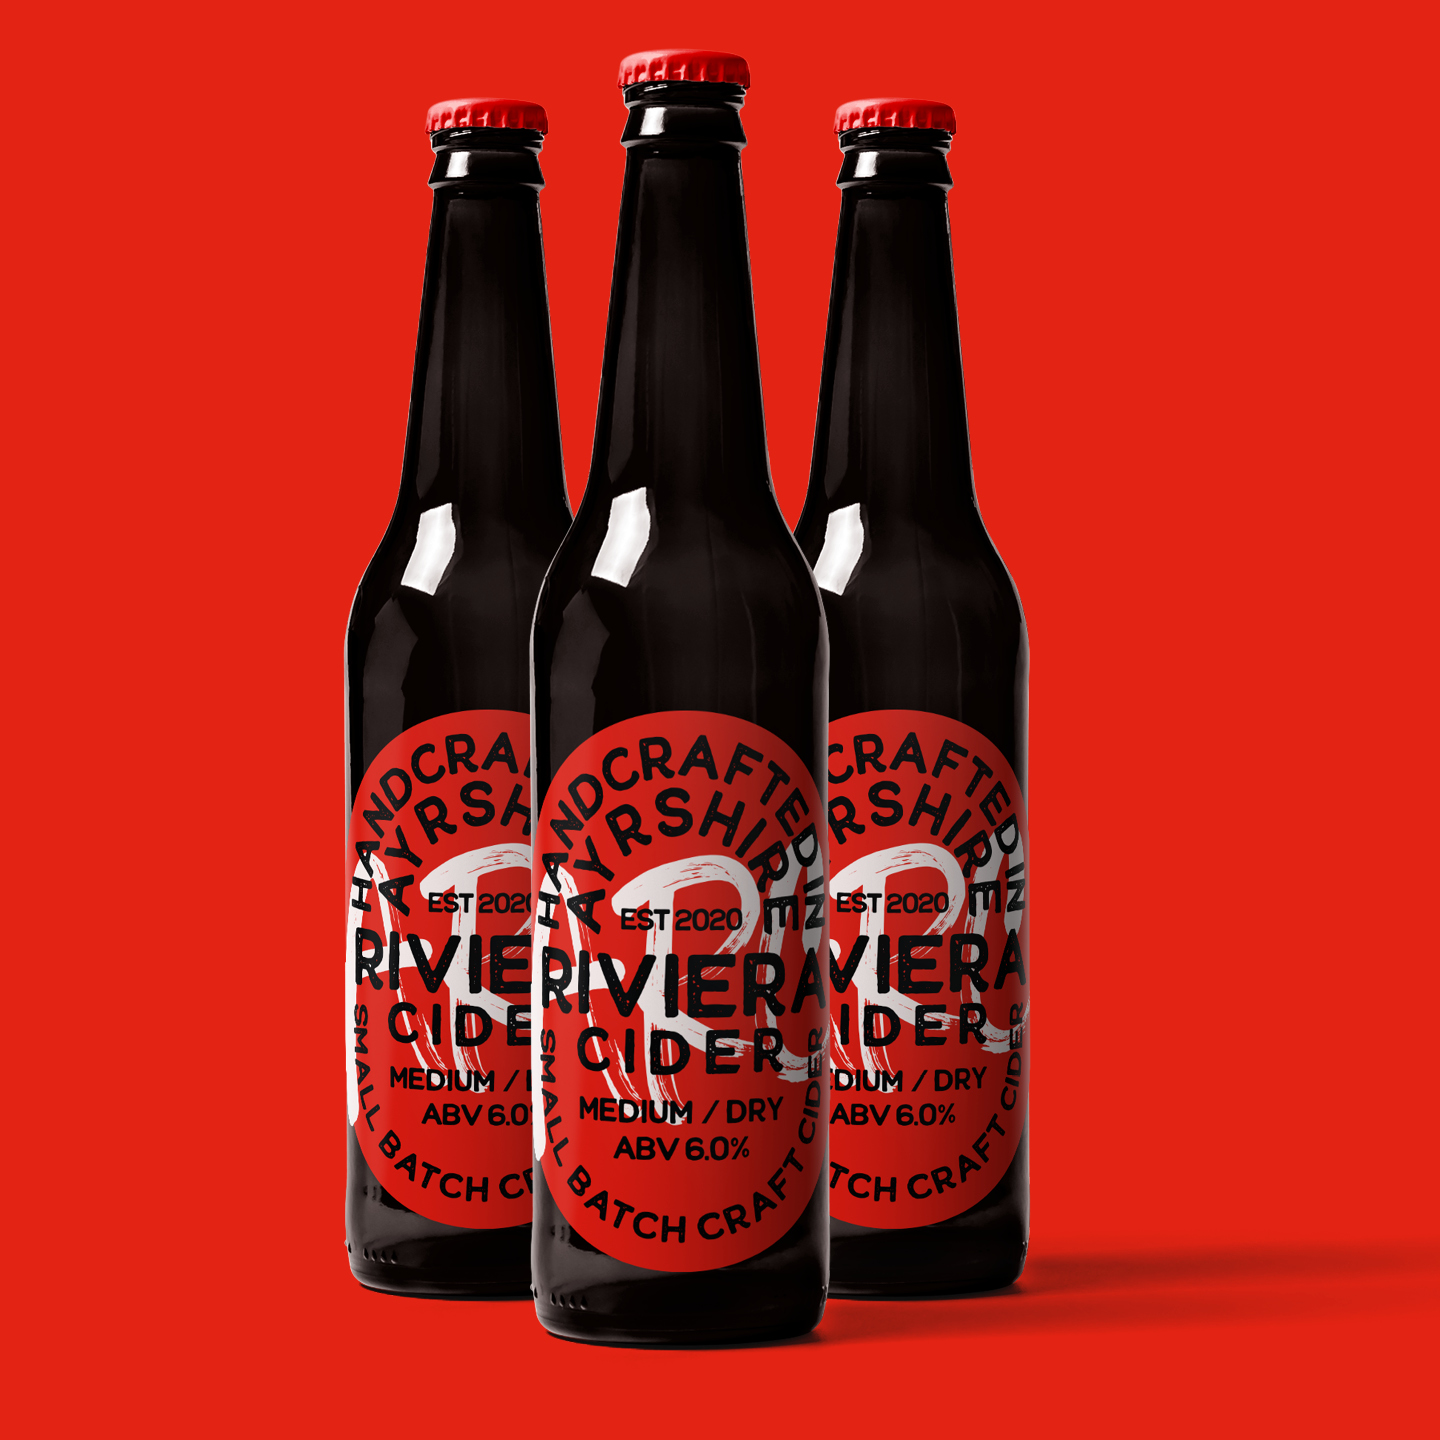 Ayrshire Riviera Cider Packaging Created by M.M.Design